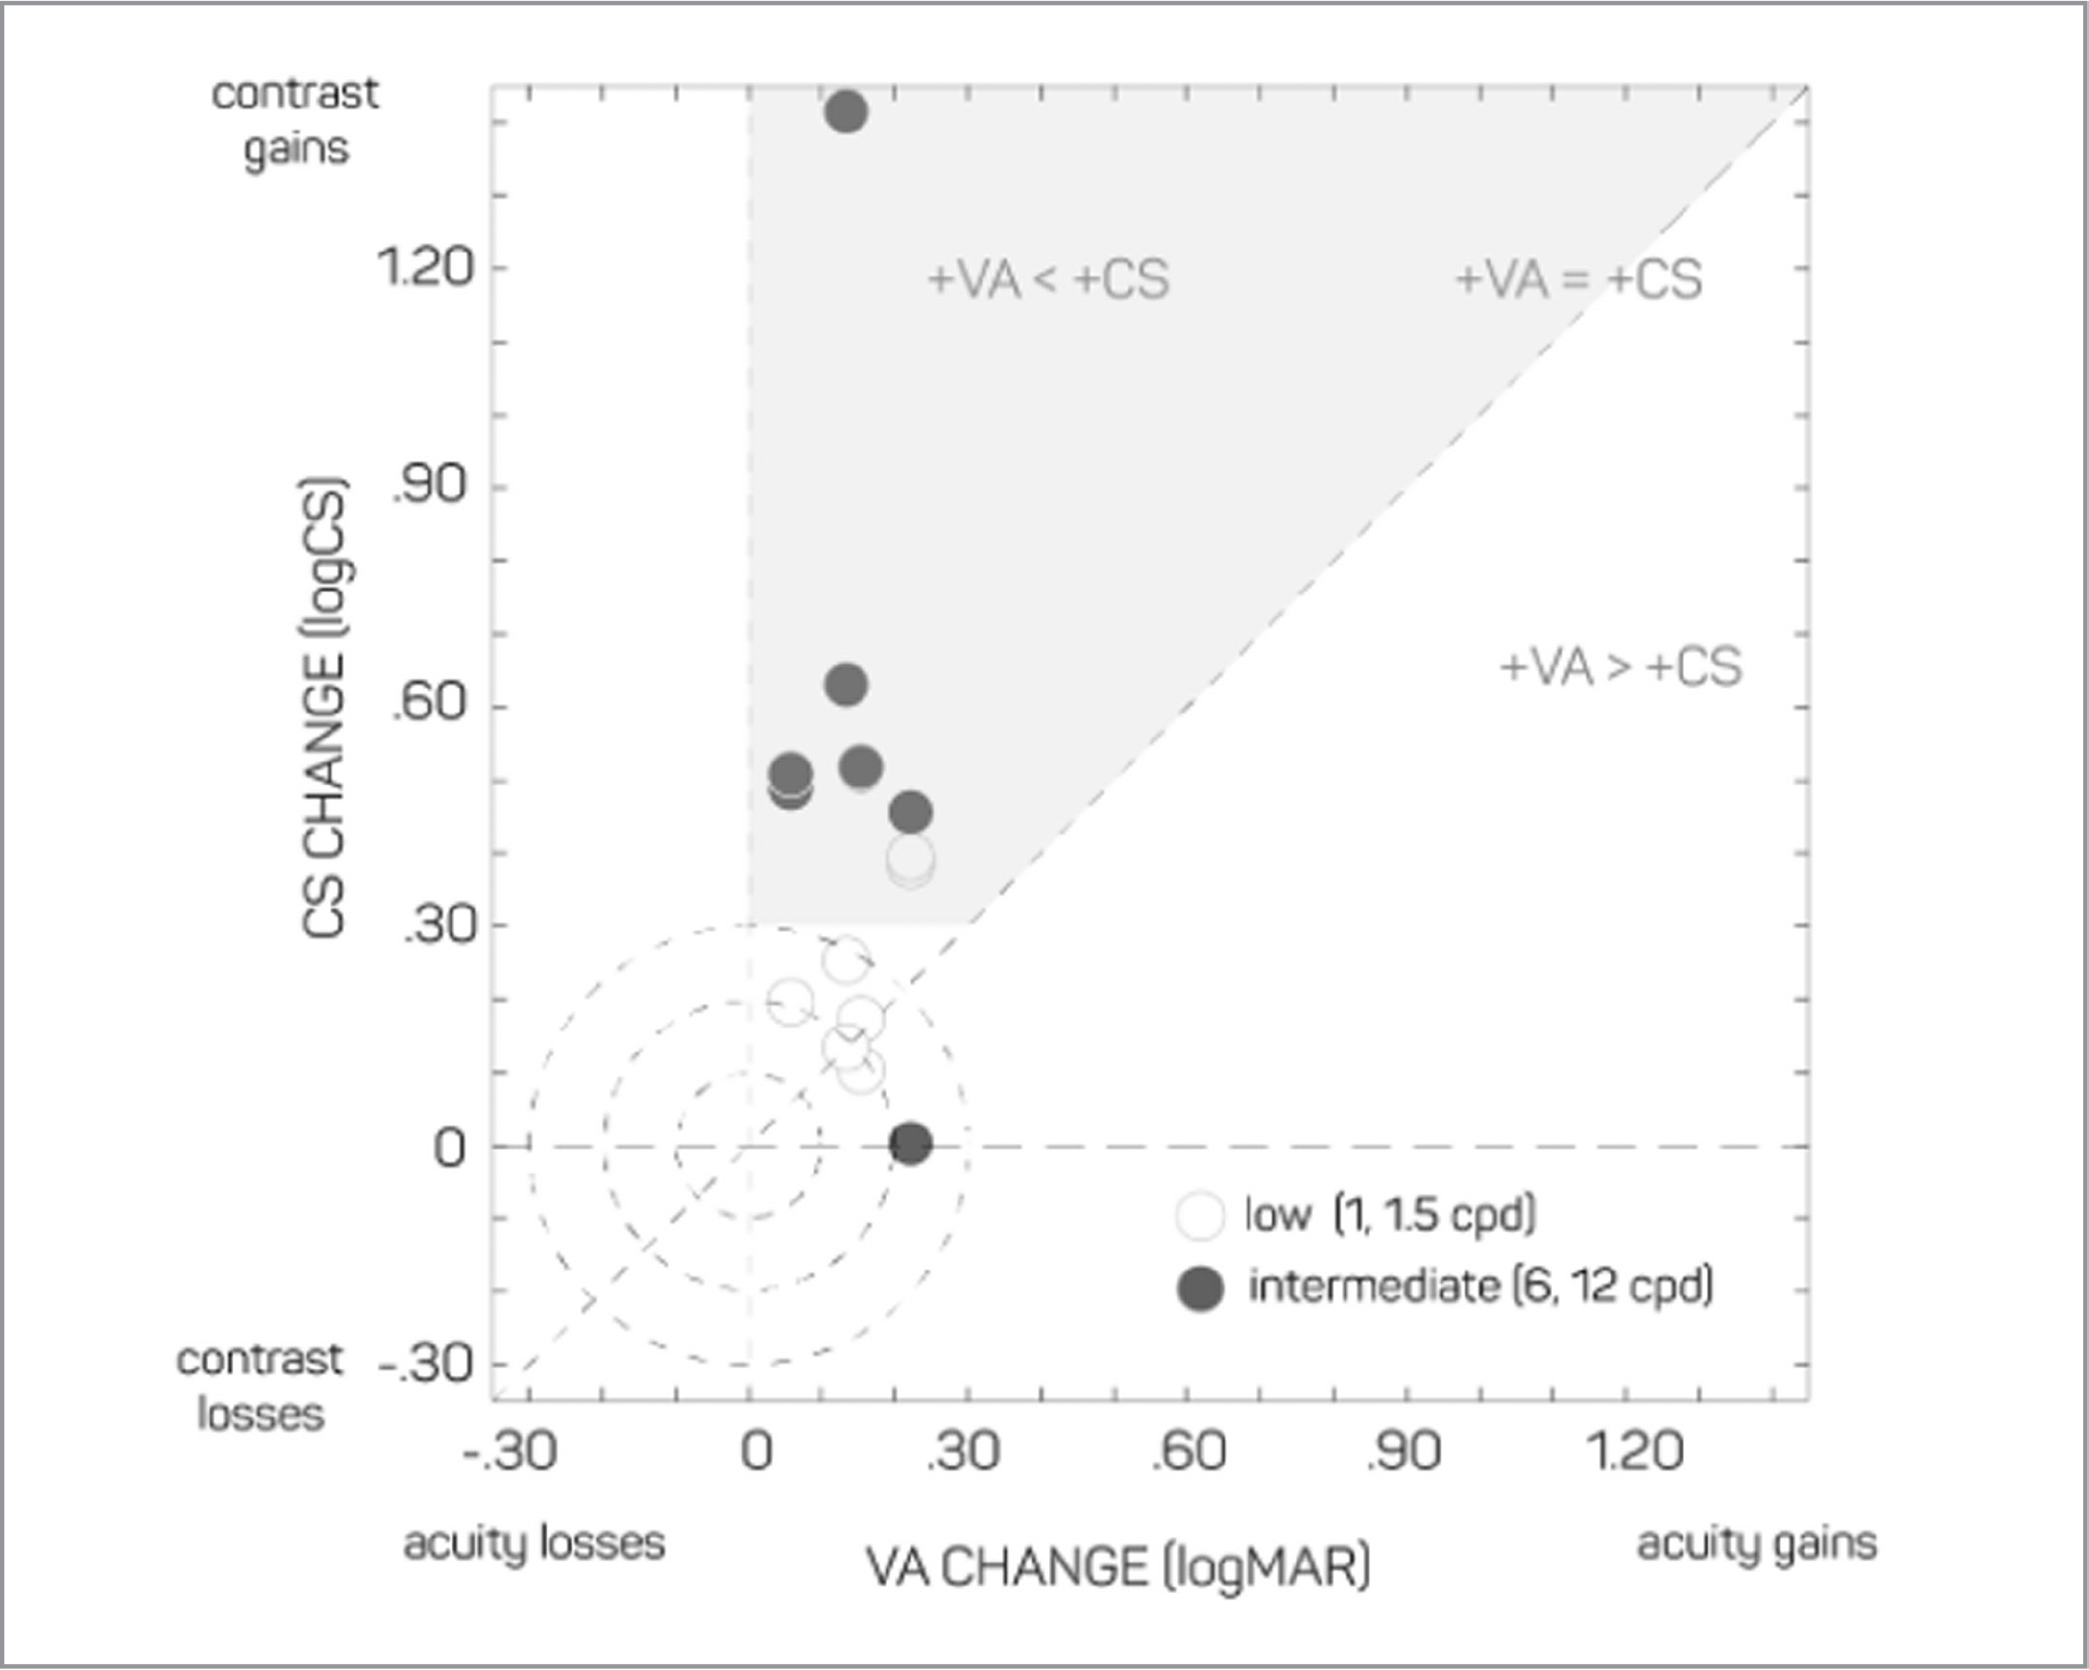 Comparing visual acuity (VA) and contrast sensitivity (CS) treatment effects. To evaluate the concurrent treatment effects that follow anti-vascular endothelial growth factor injections, visual gains for VA (X-axis) are co-plotted against gains for contrast sensitivity (CS) measured at two low (open) and two intermediate (filled) spatial frequencies. Three concentric circles mark the visual gain regions of one, two, and three steps in acuity and contrast, defined in logMAR or logCS (0.10, 0.20, and 0.30 log10 units). The main diagonal represents treatment profile of equal gains in VA and CS; the gray-shaded region marks a treatment profile of large meaningful CS changes (> 0.30 logCS), which are greater than concurrent VA gains. Note how frequencies of 3 cycles per degree (cpd) and 6 cpd (ie, 20/200 and 20/100) provide an opportunity to observe large treatment effects that cannot be observed in VA testing alone.